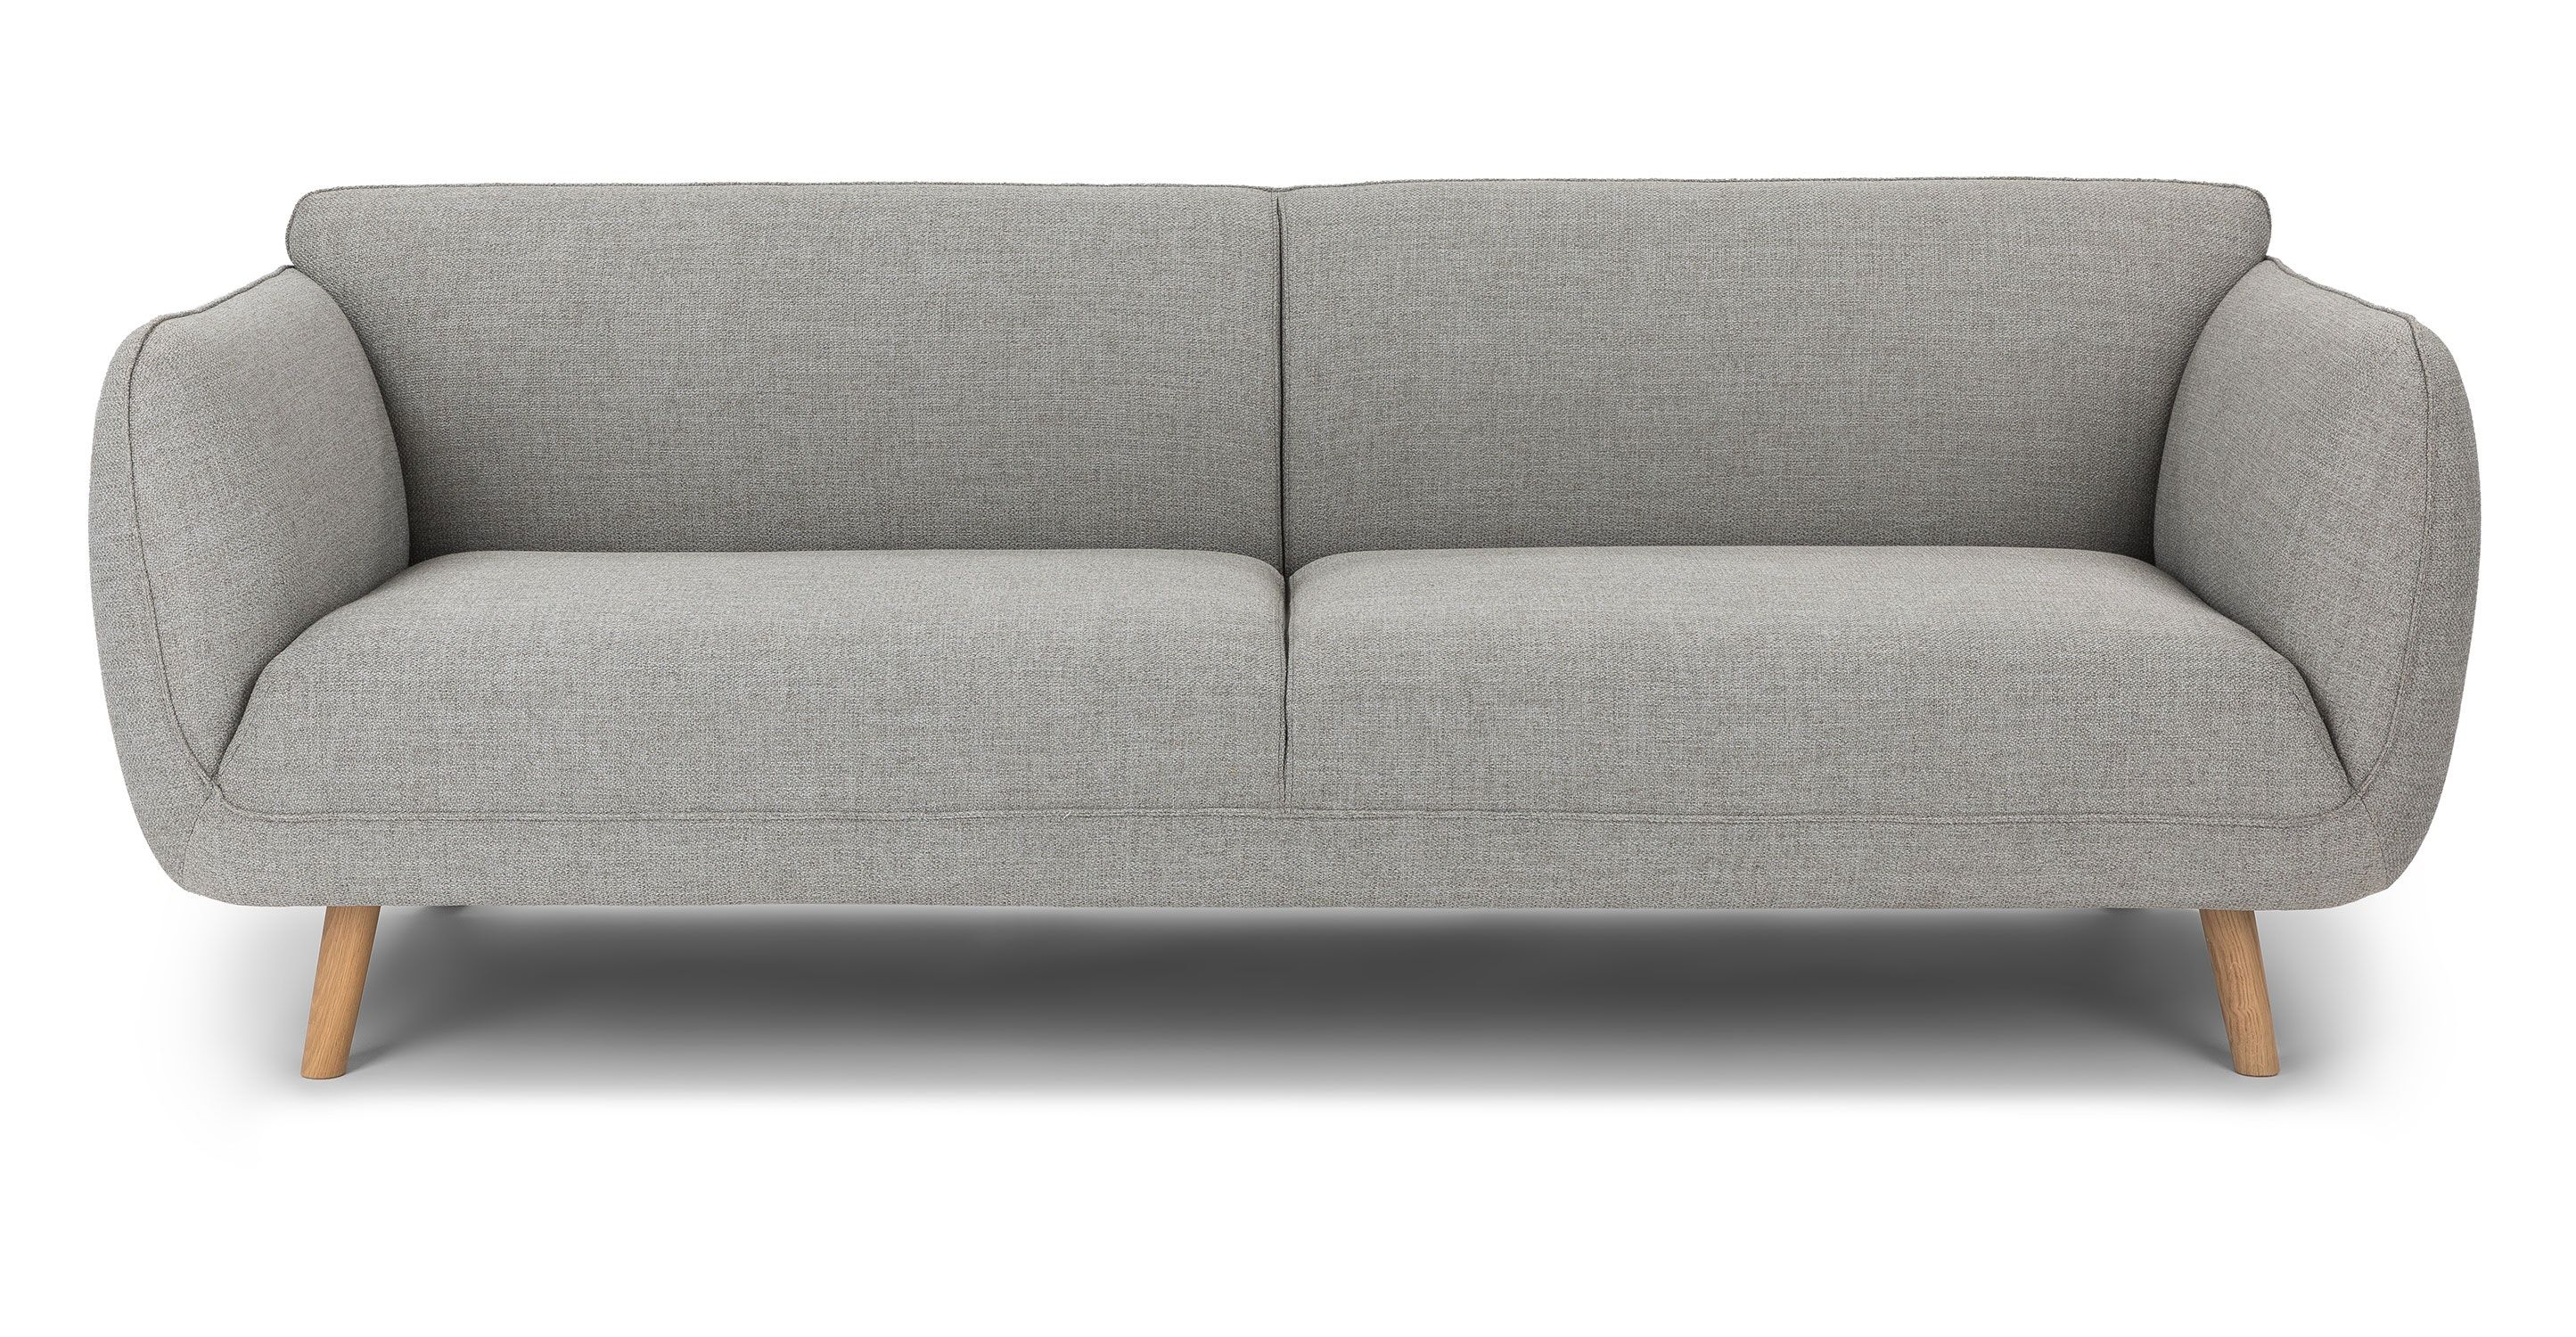 gray fabric sofa 3 seat solid wood legs article haro modern rh pinterest co kr